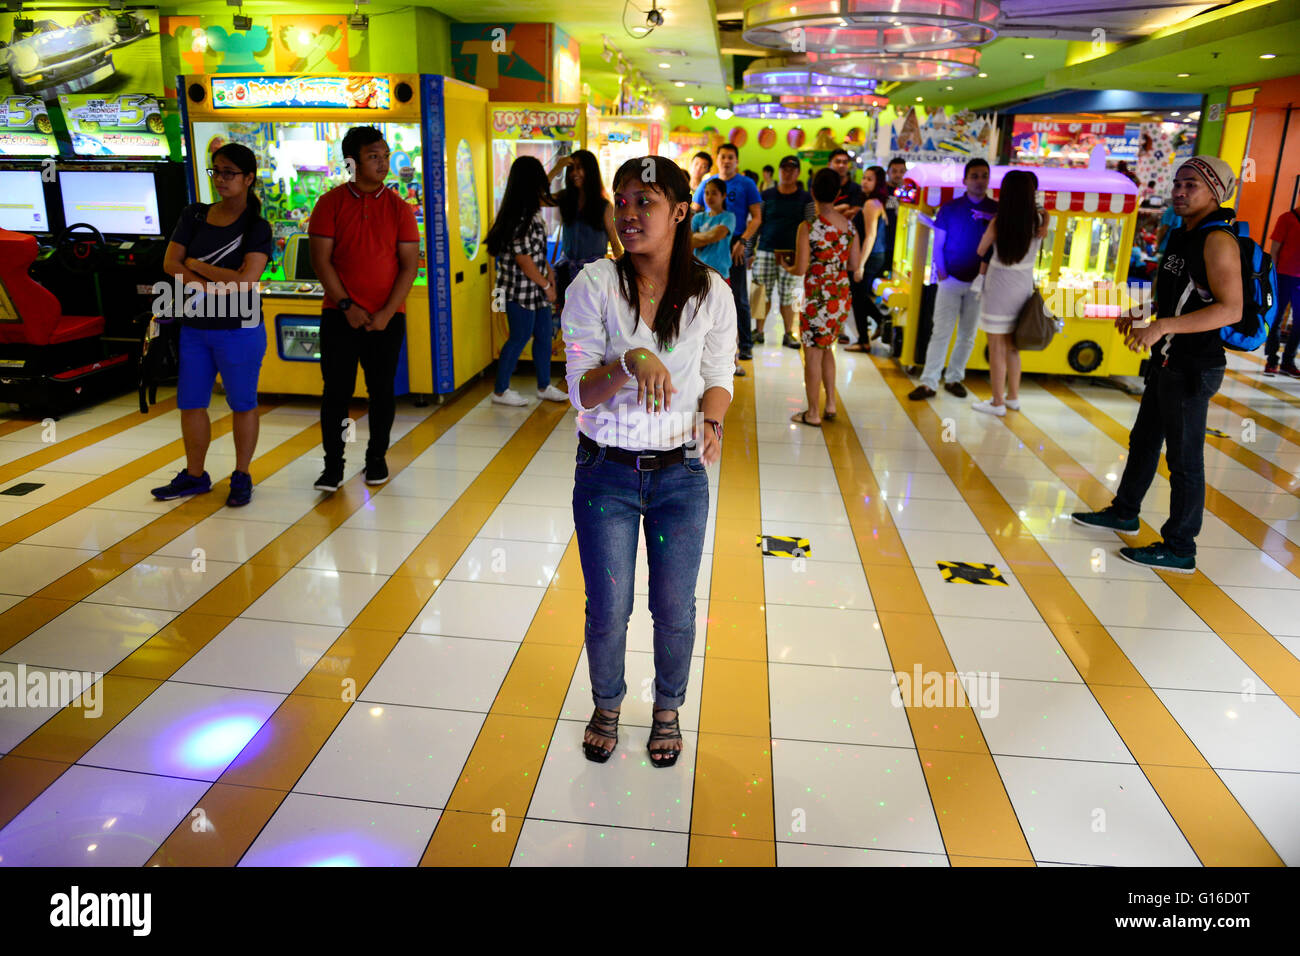 PHILIPPINES, Manila, Pasig City, shopping mall Robinson Galleria, game room , gamble hall with slots - Stock Image